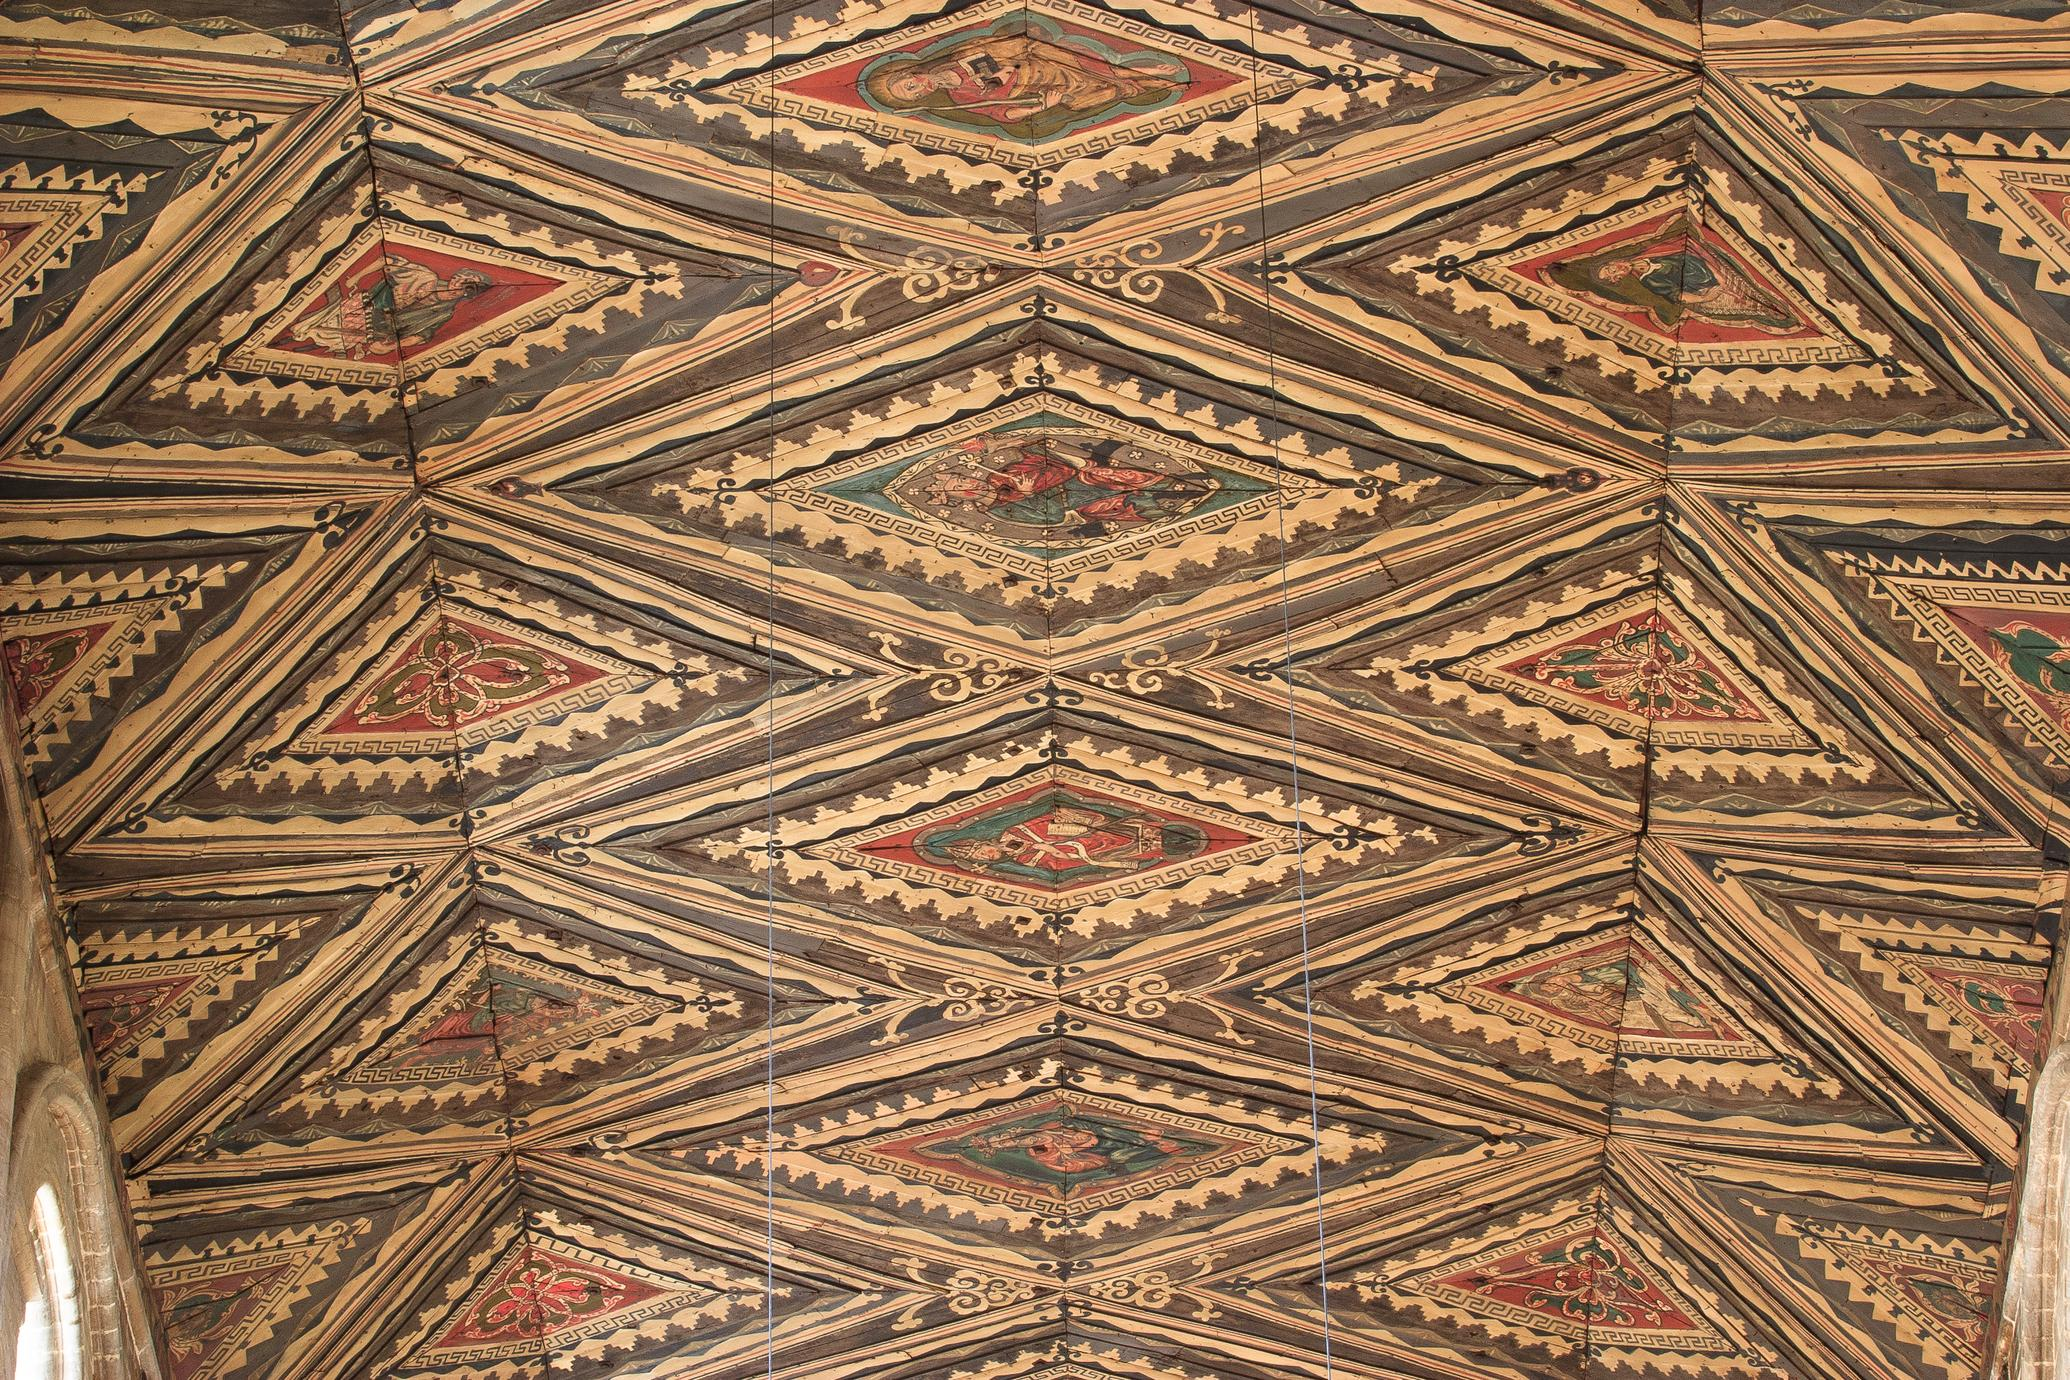 Peterborough Cathedral nave ceiling closeup